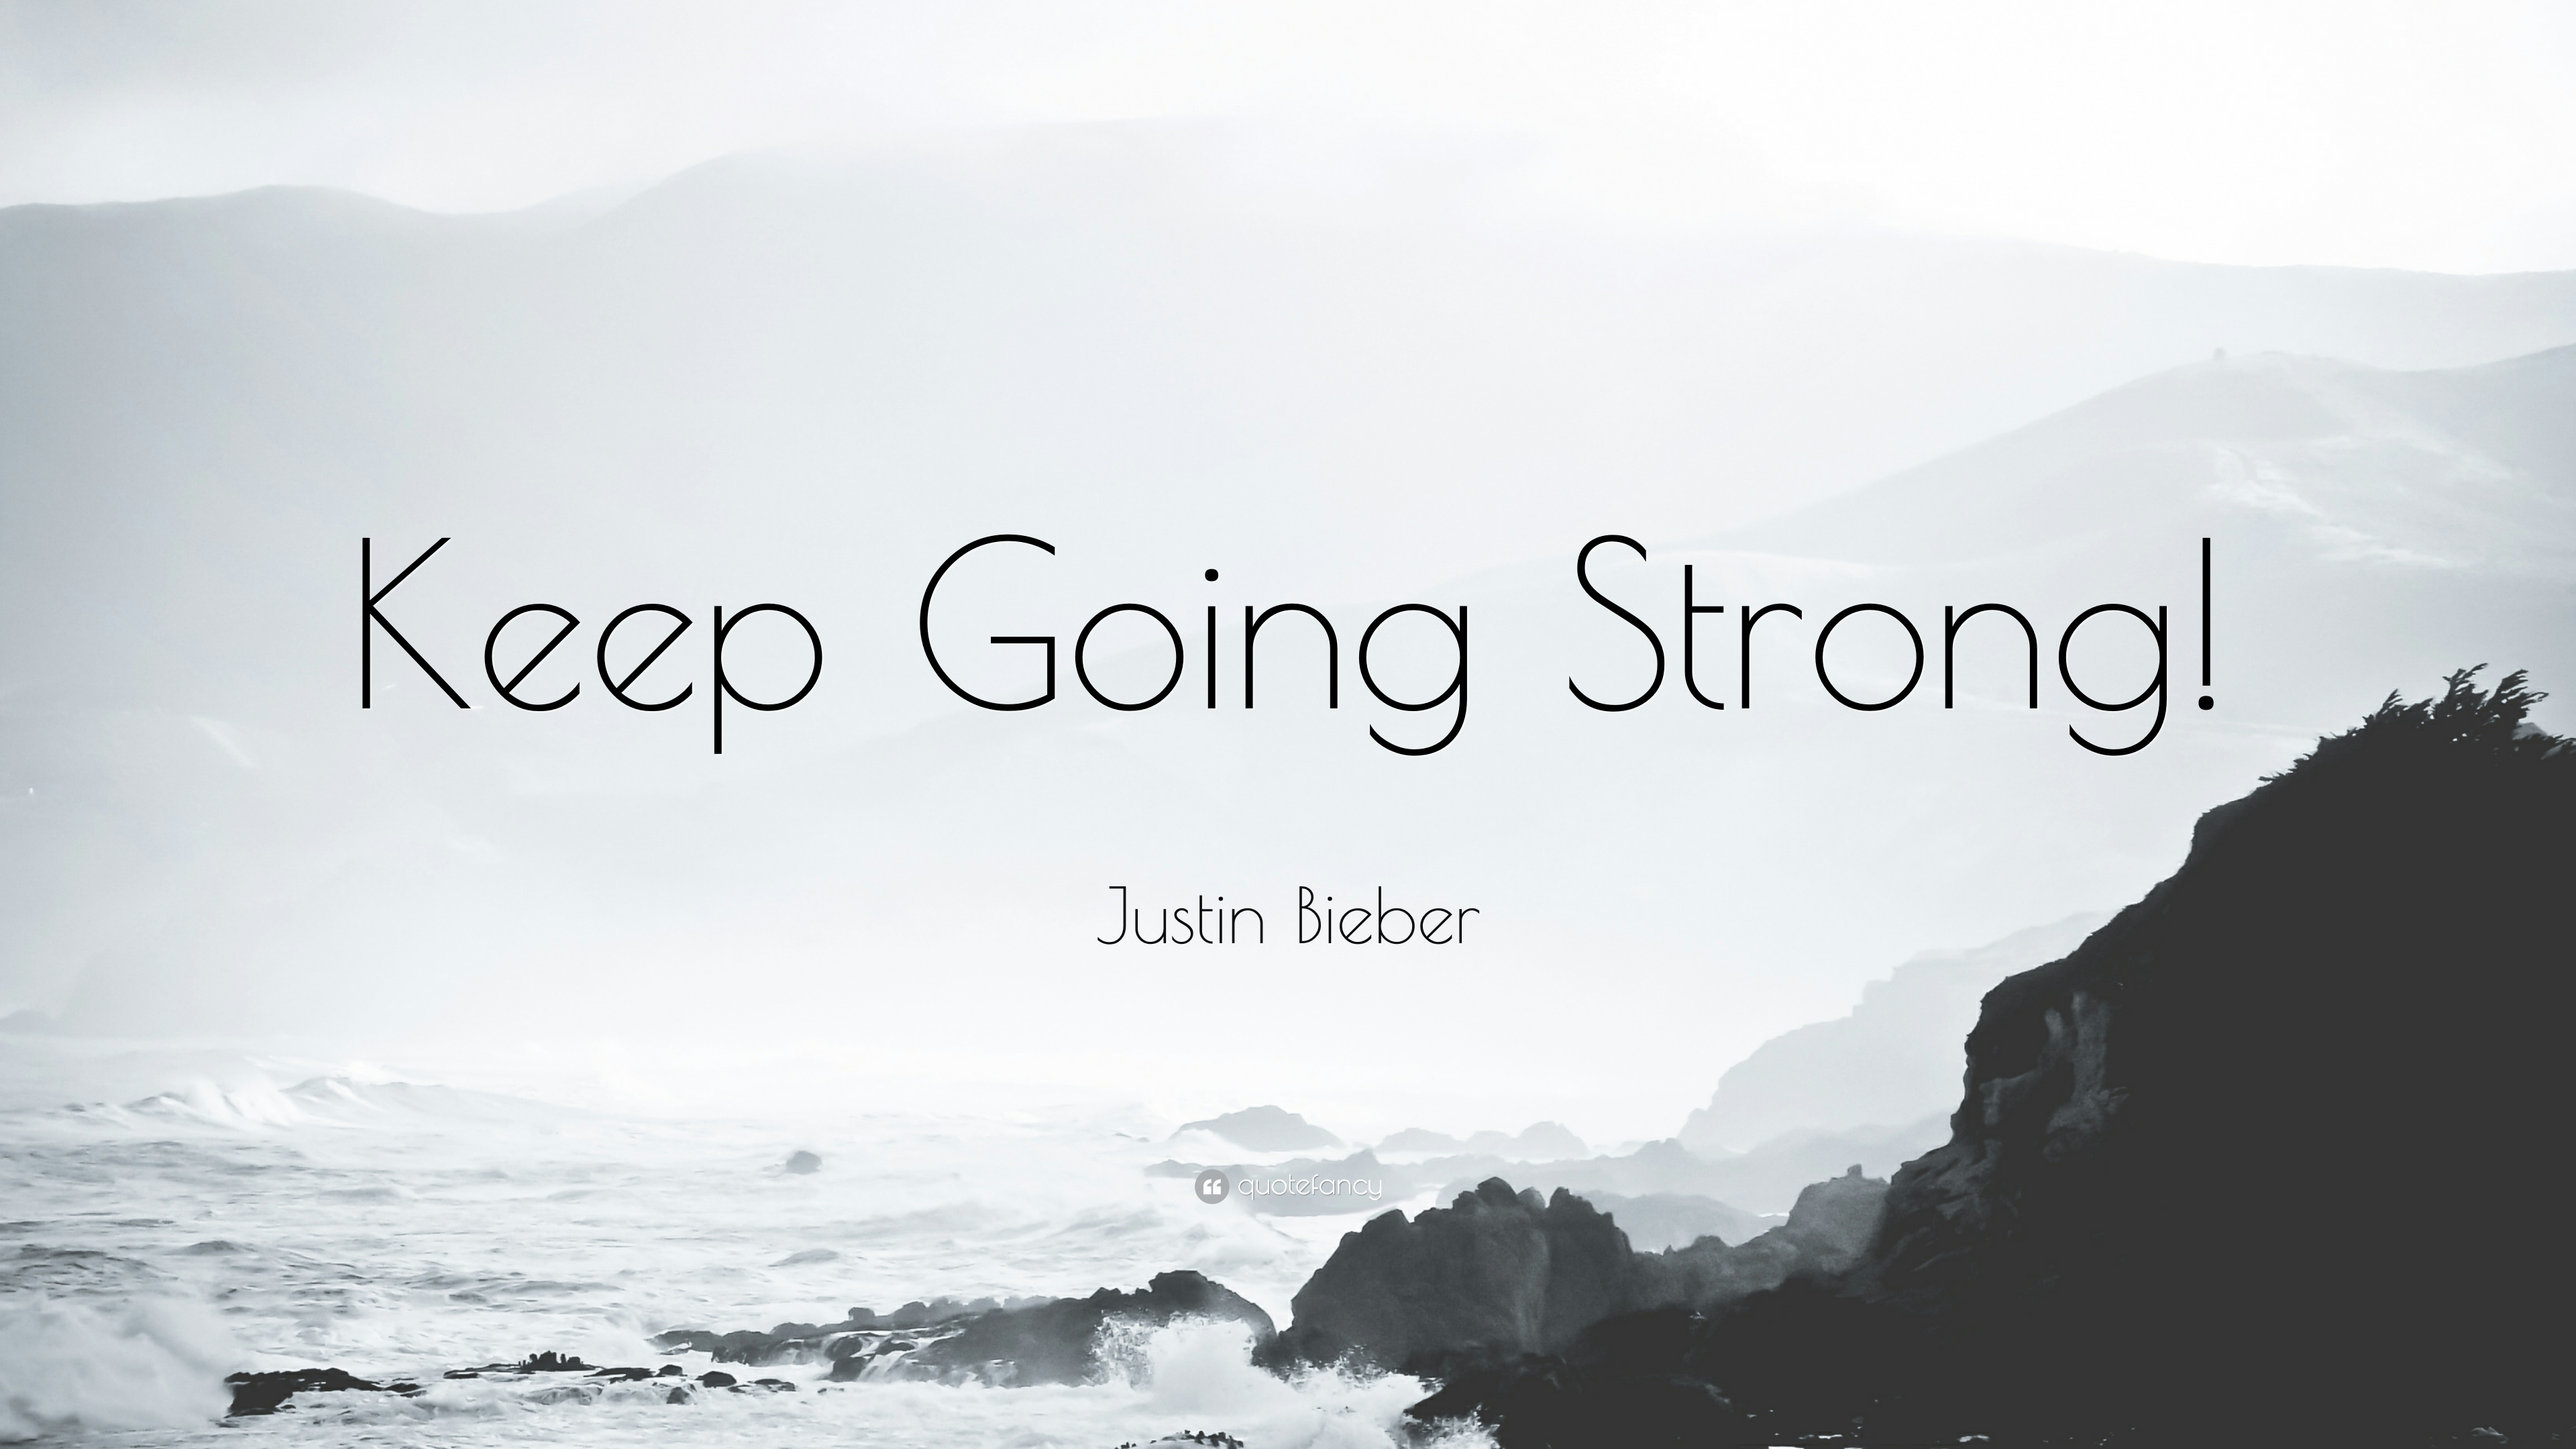 """Justin Bieber Quote: """"Keep Going Strong!"""" (5 wallpapers) - Quotefancy"""